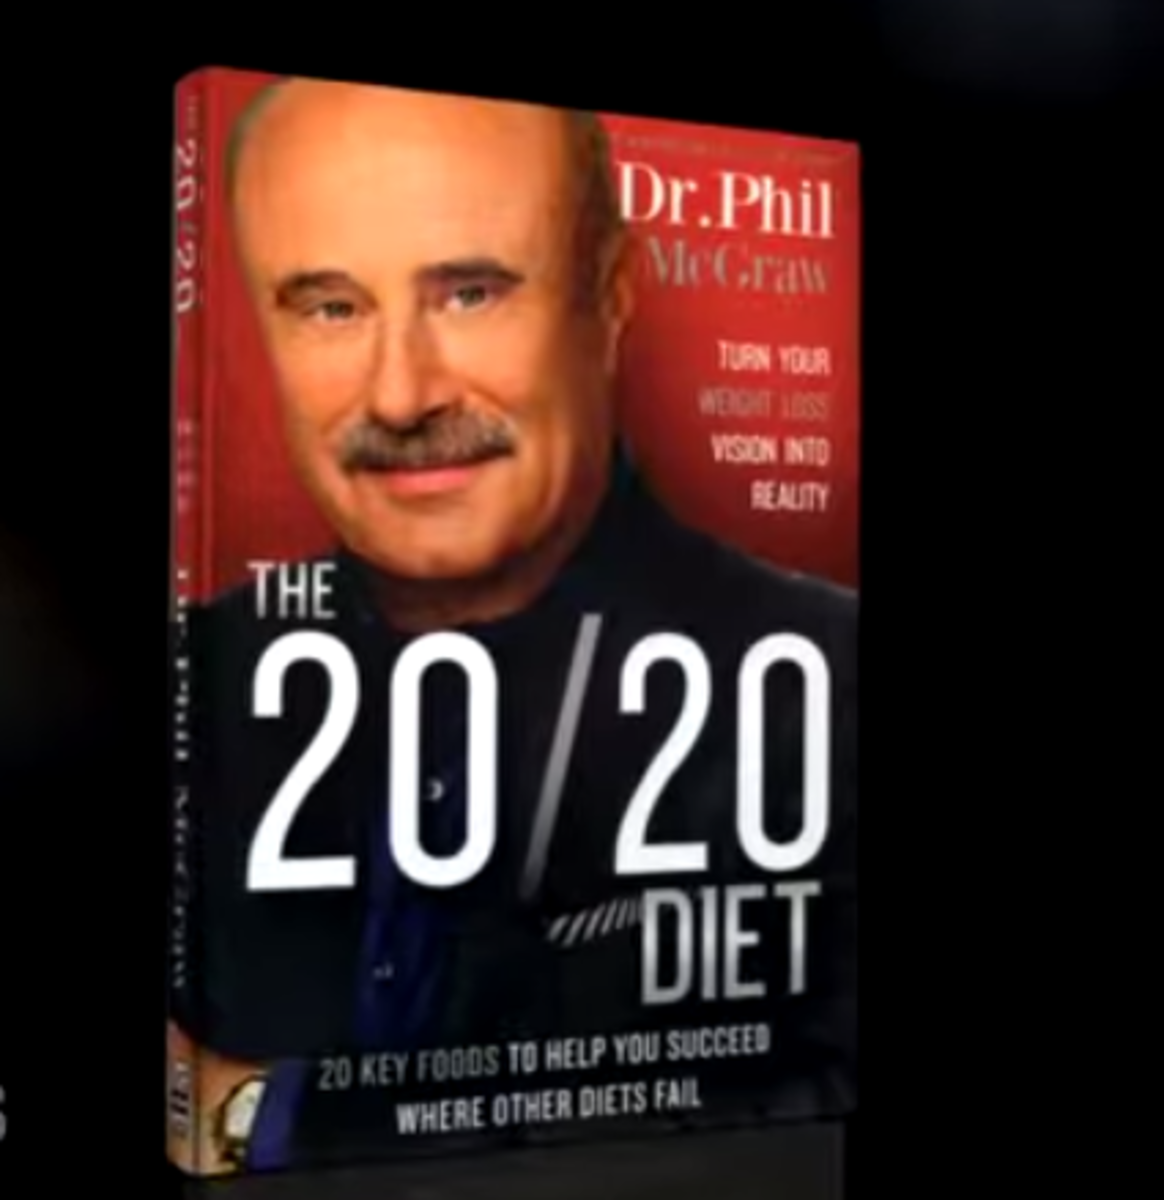 Dr. Phil Diet Plan: The 20/20 Diet Review